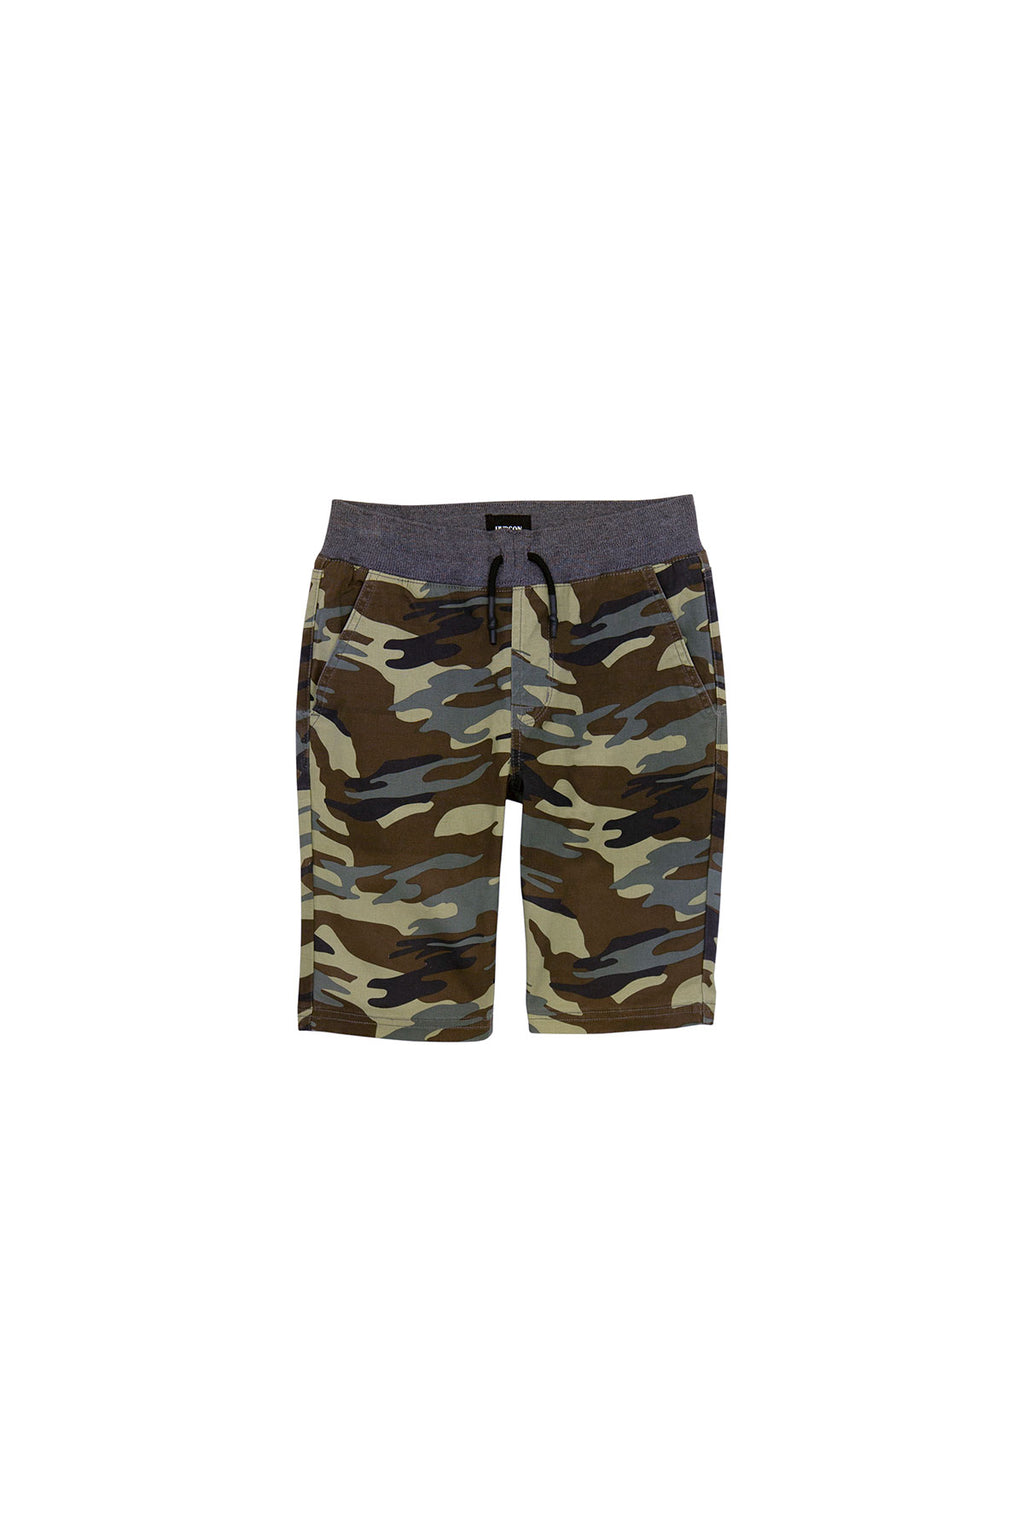 BOYS CAMPBELL SHORT, SIZES 8-20 - OLIVE CAMOUFLAGE - Image 1